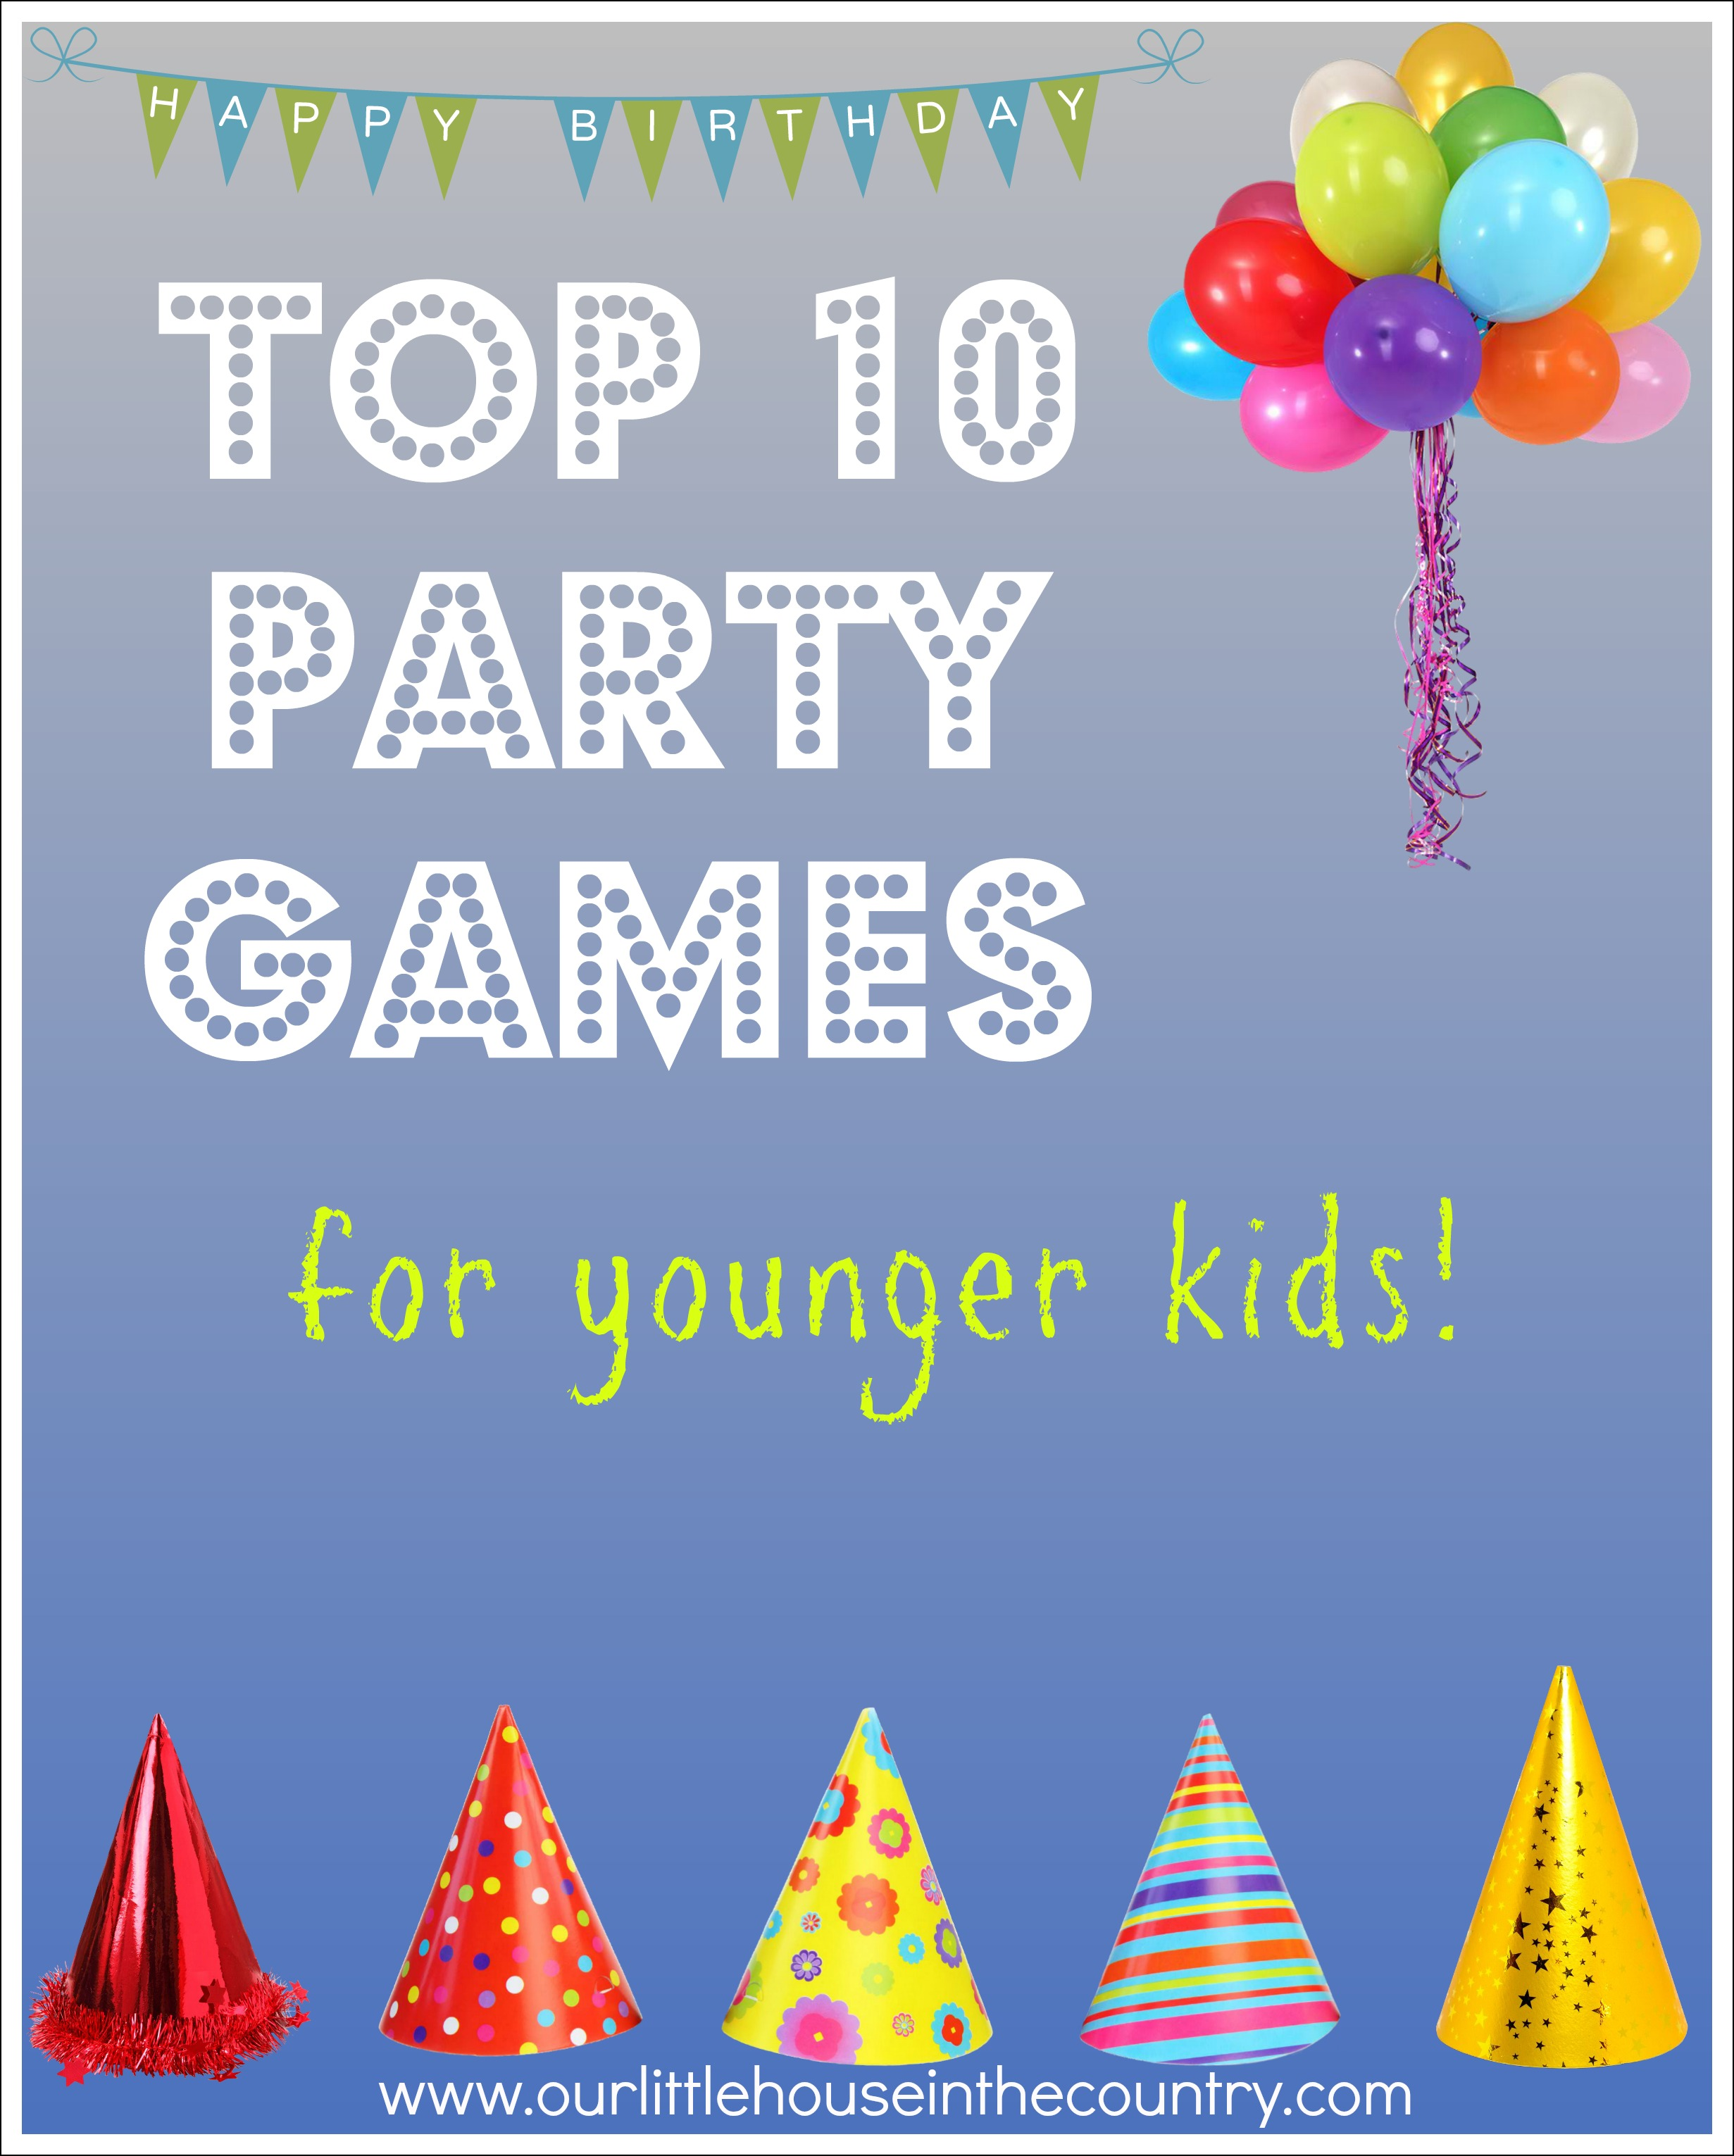 Top 10 Party Games For Younger Kids